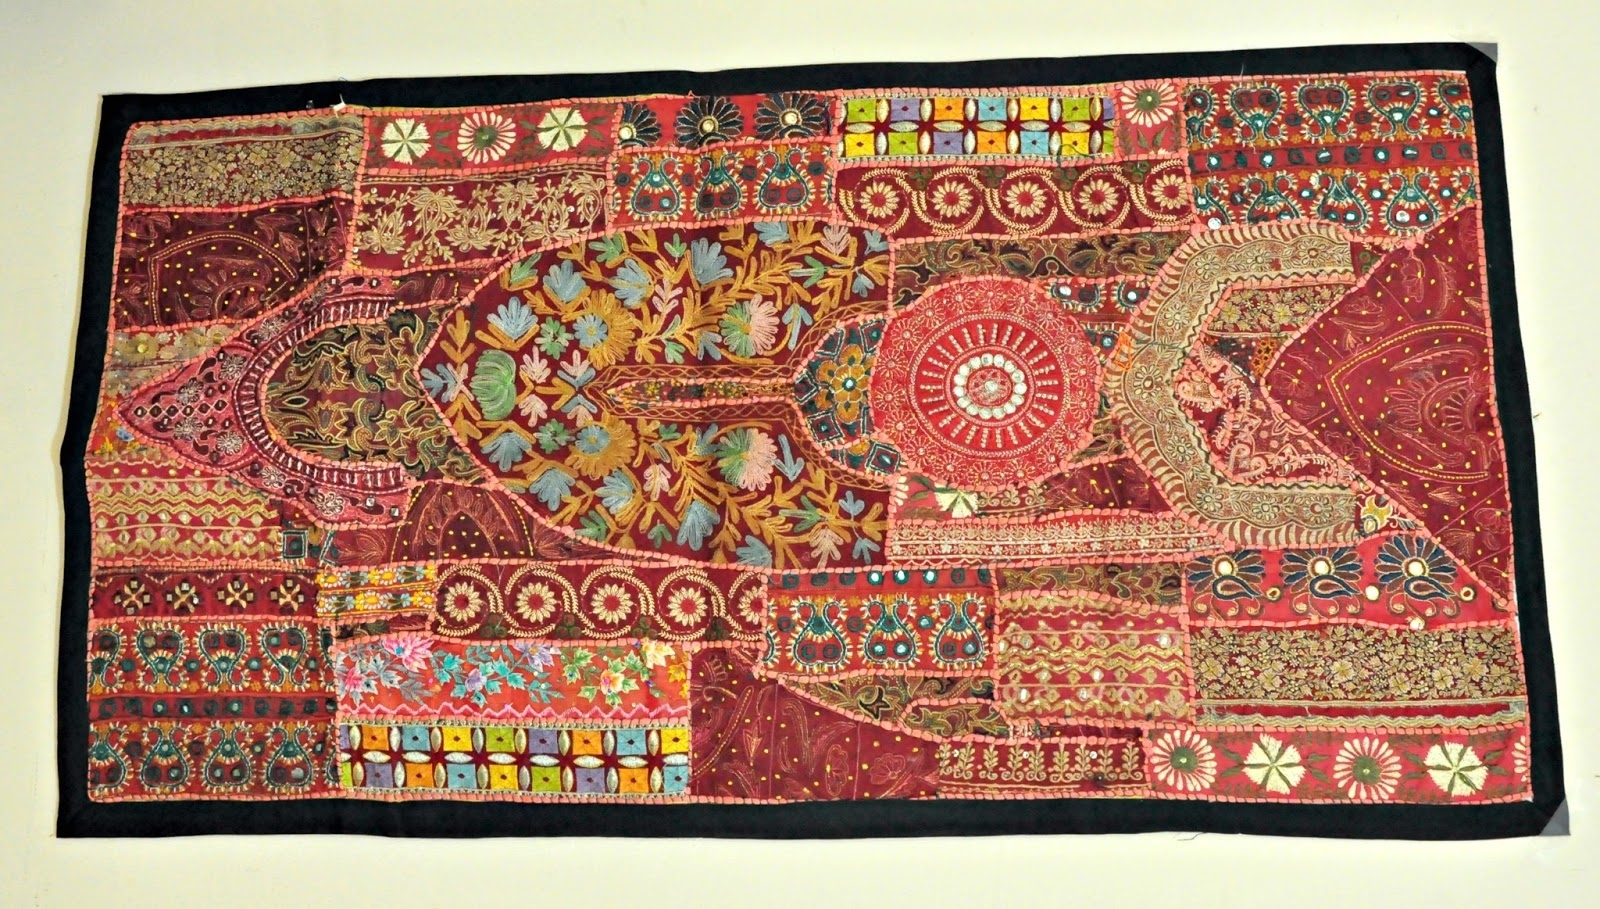 Jaipur Handloom: Indian Vintage Handmade Patchwork Tapestry Wall Regarding Latest Vintage Textile Wall Art (View 6 of 15)